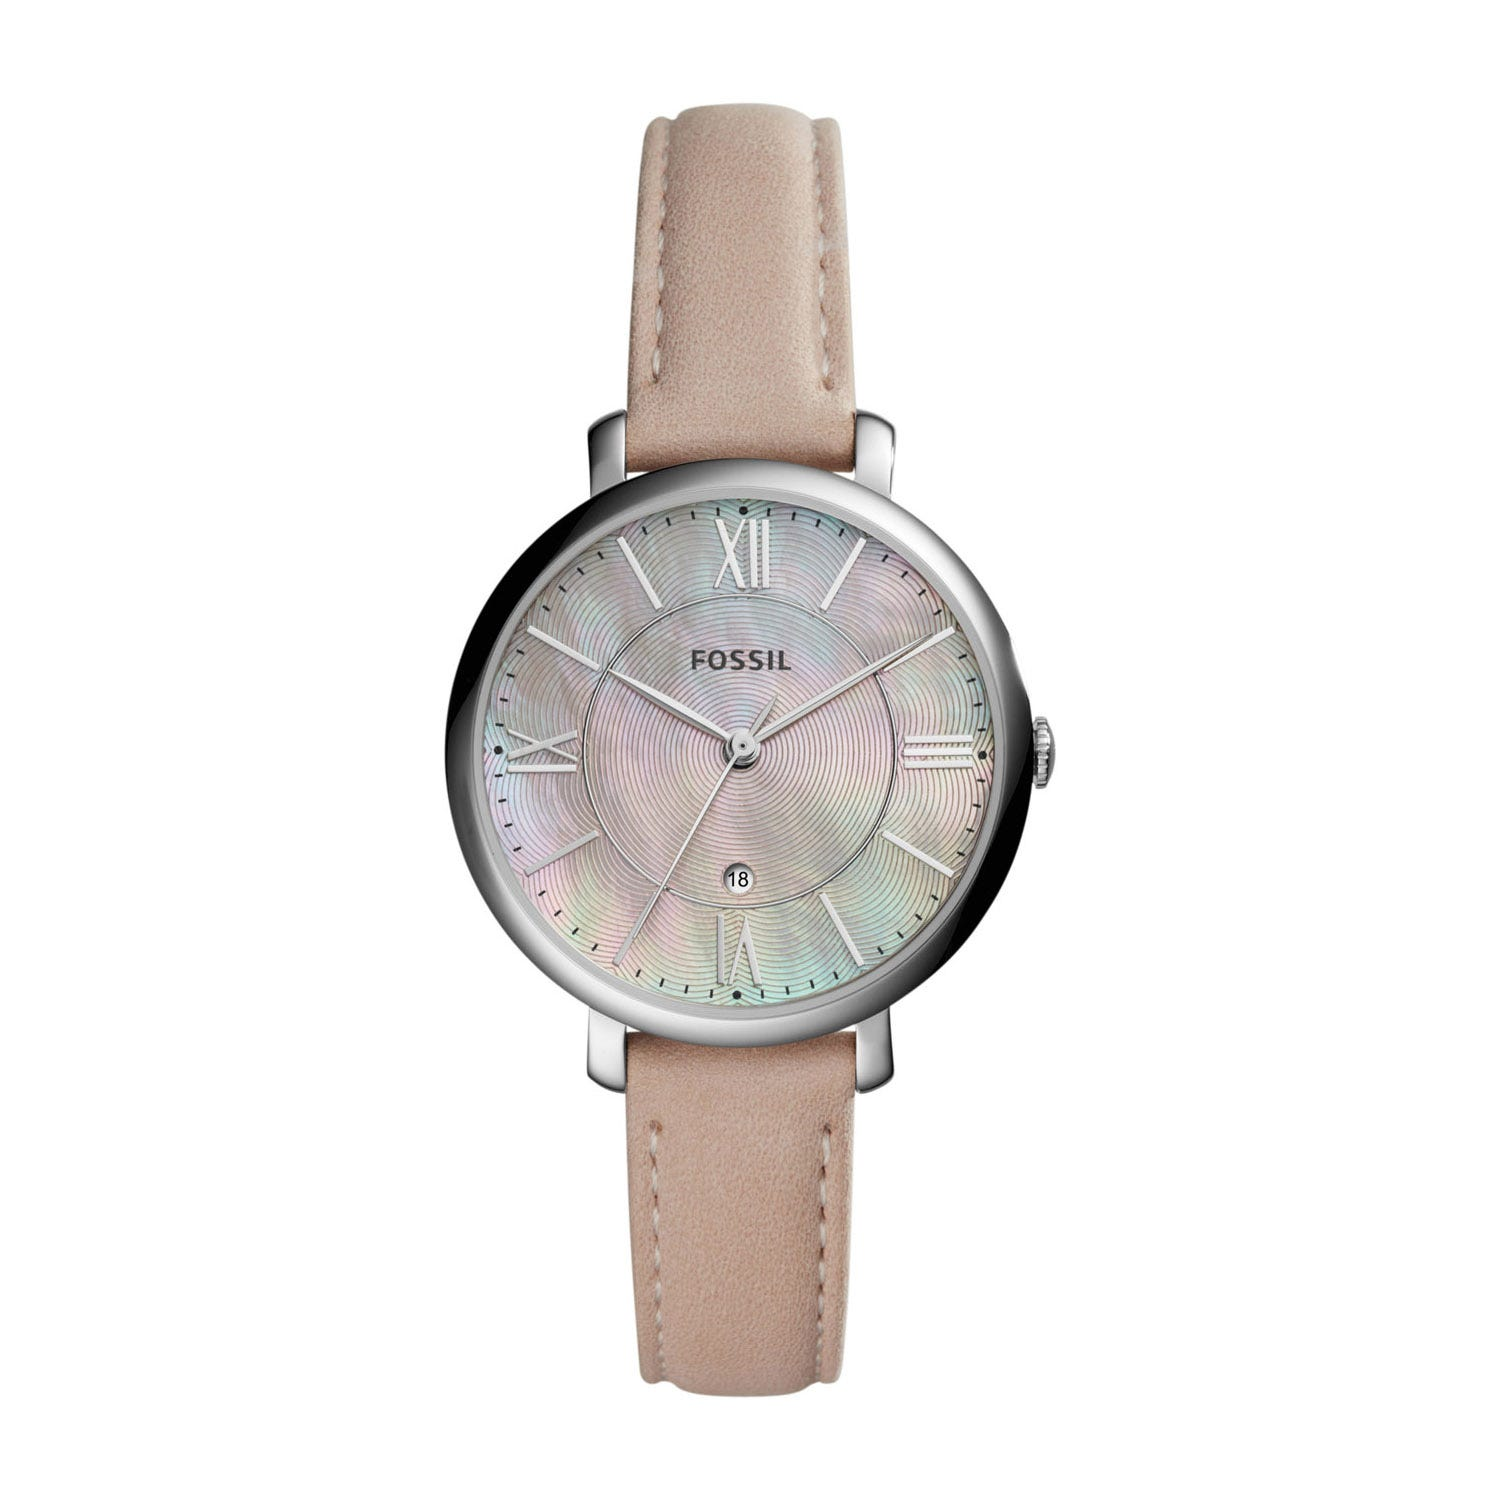 Fossil Jacqueline Ladies' Pink Mother of Pearl Pink Strap Watch